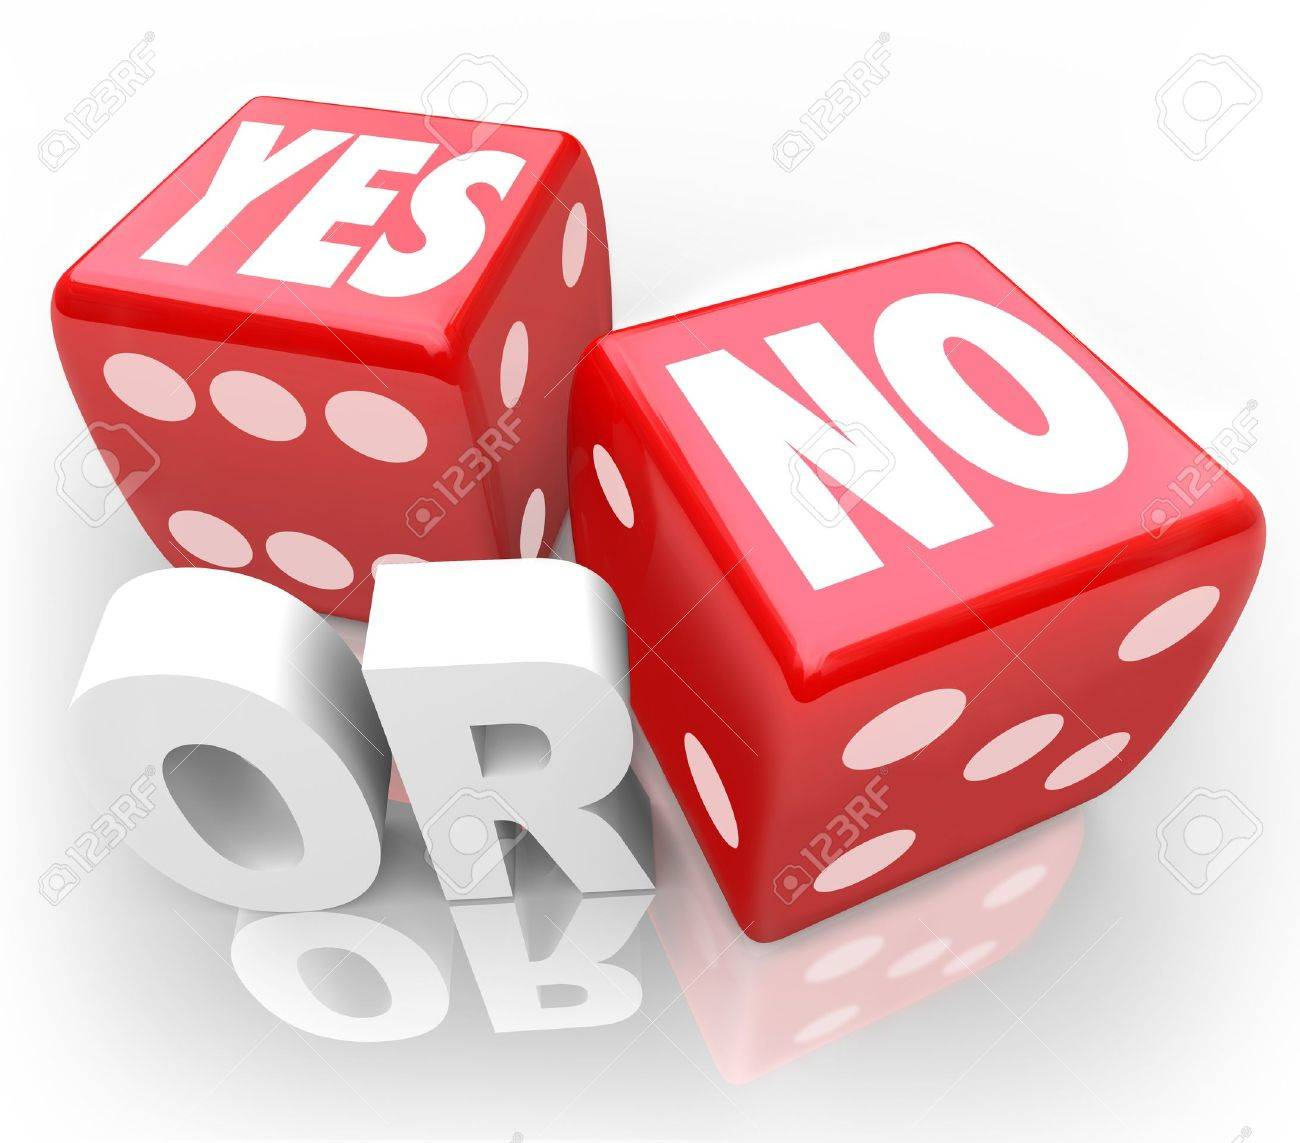 The letters Q & A on red dice to symbolize questions and answers to customer questions or assistance to frequently asked queries Stock Photo - 20163264